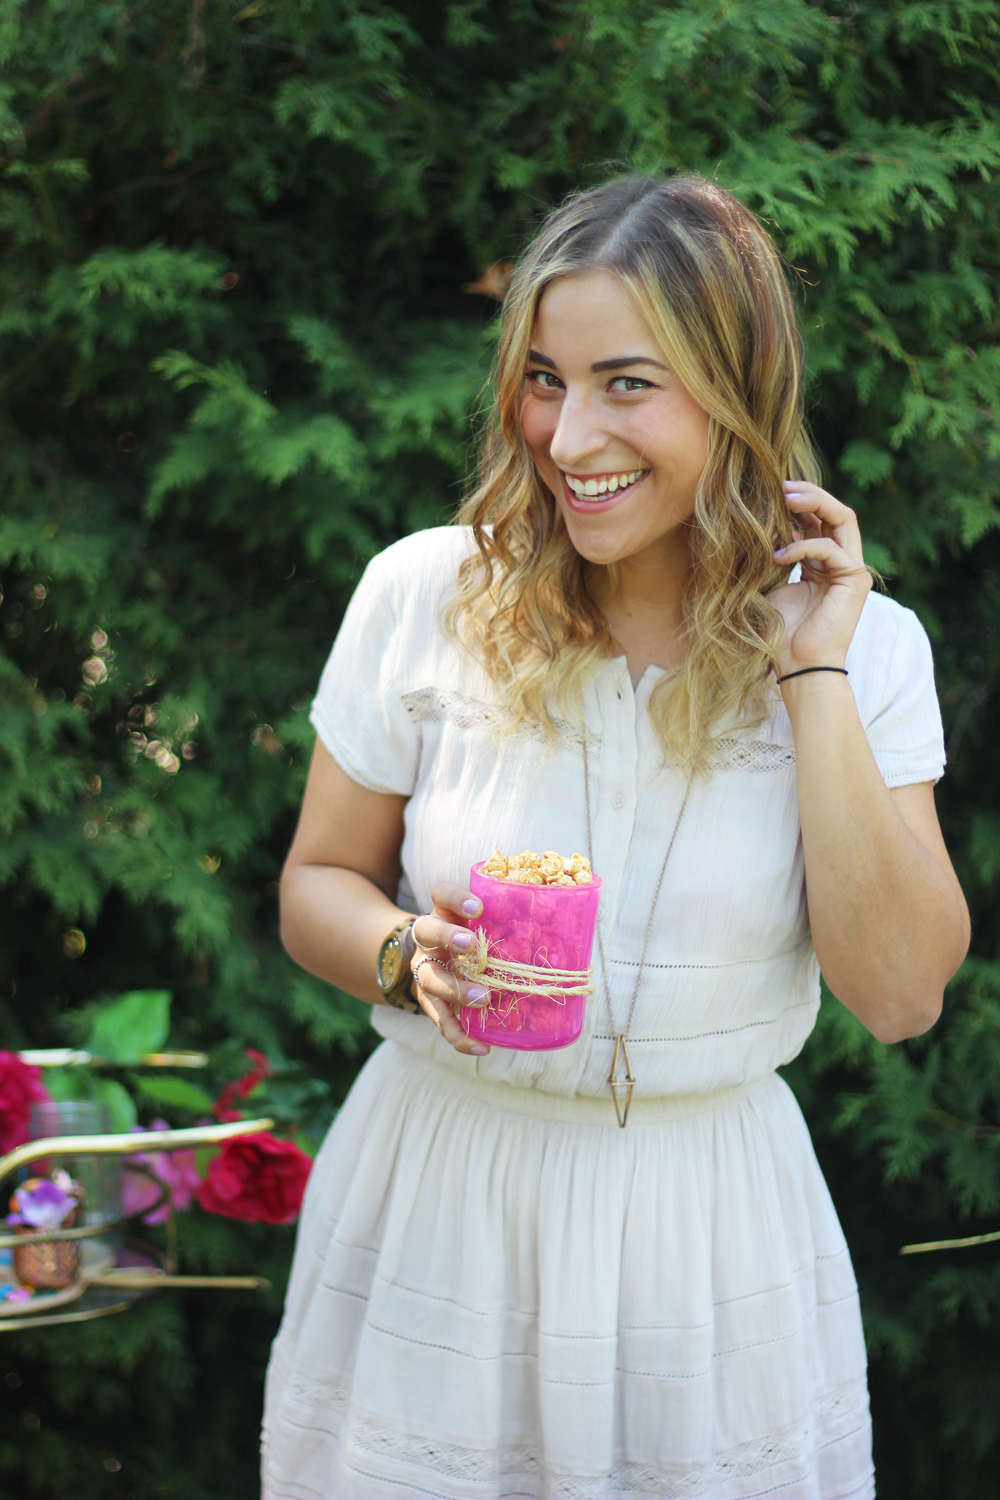 Summer Party Essentials - According to Toronto Fashion Bloggers